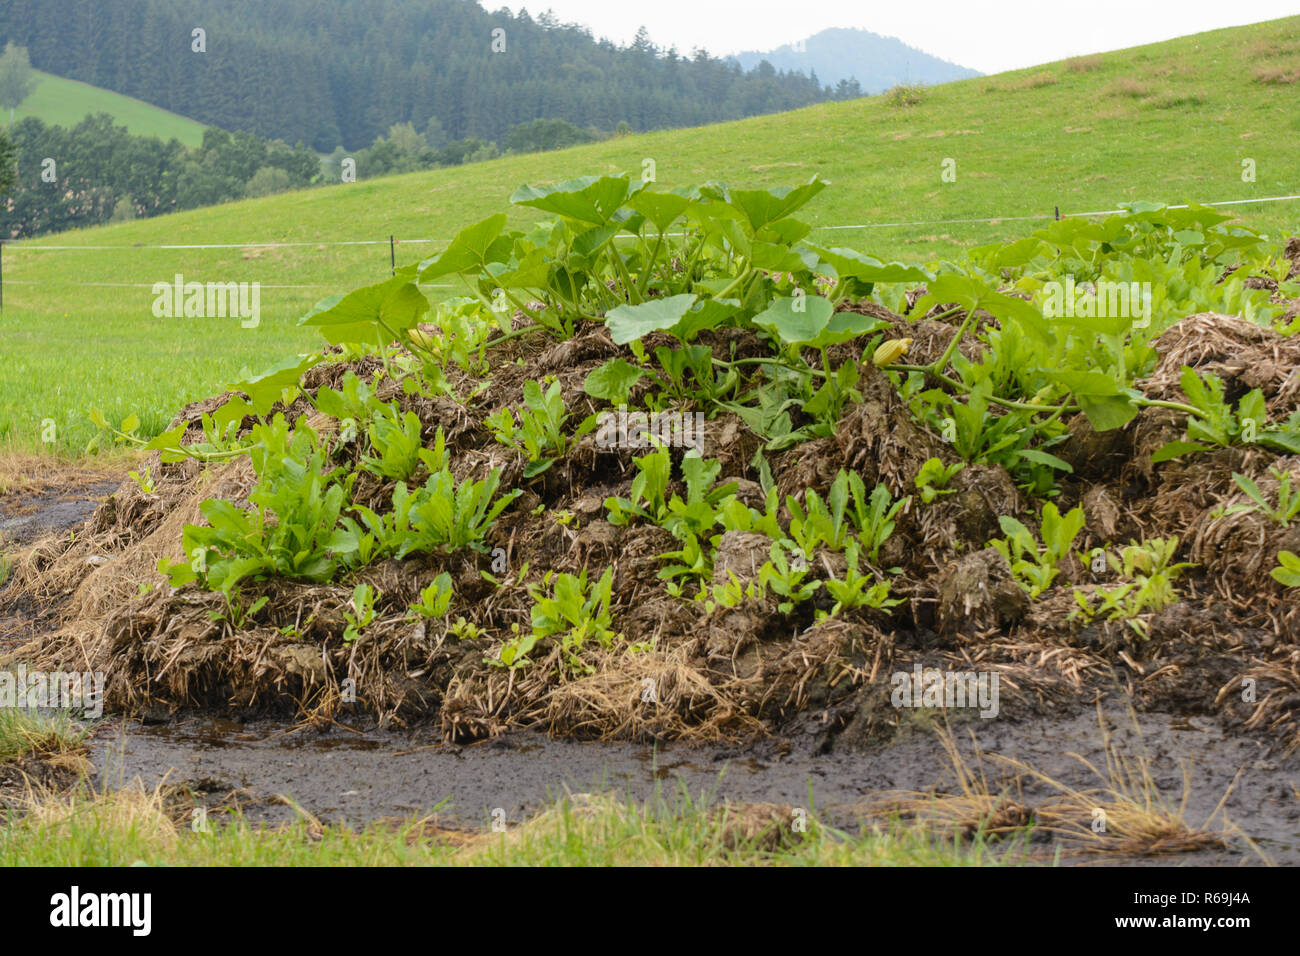 Profitable Natural Hotbed In Open Countryside - Stock Image